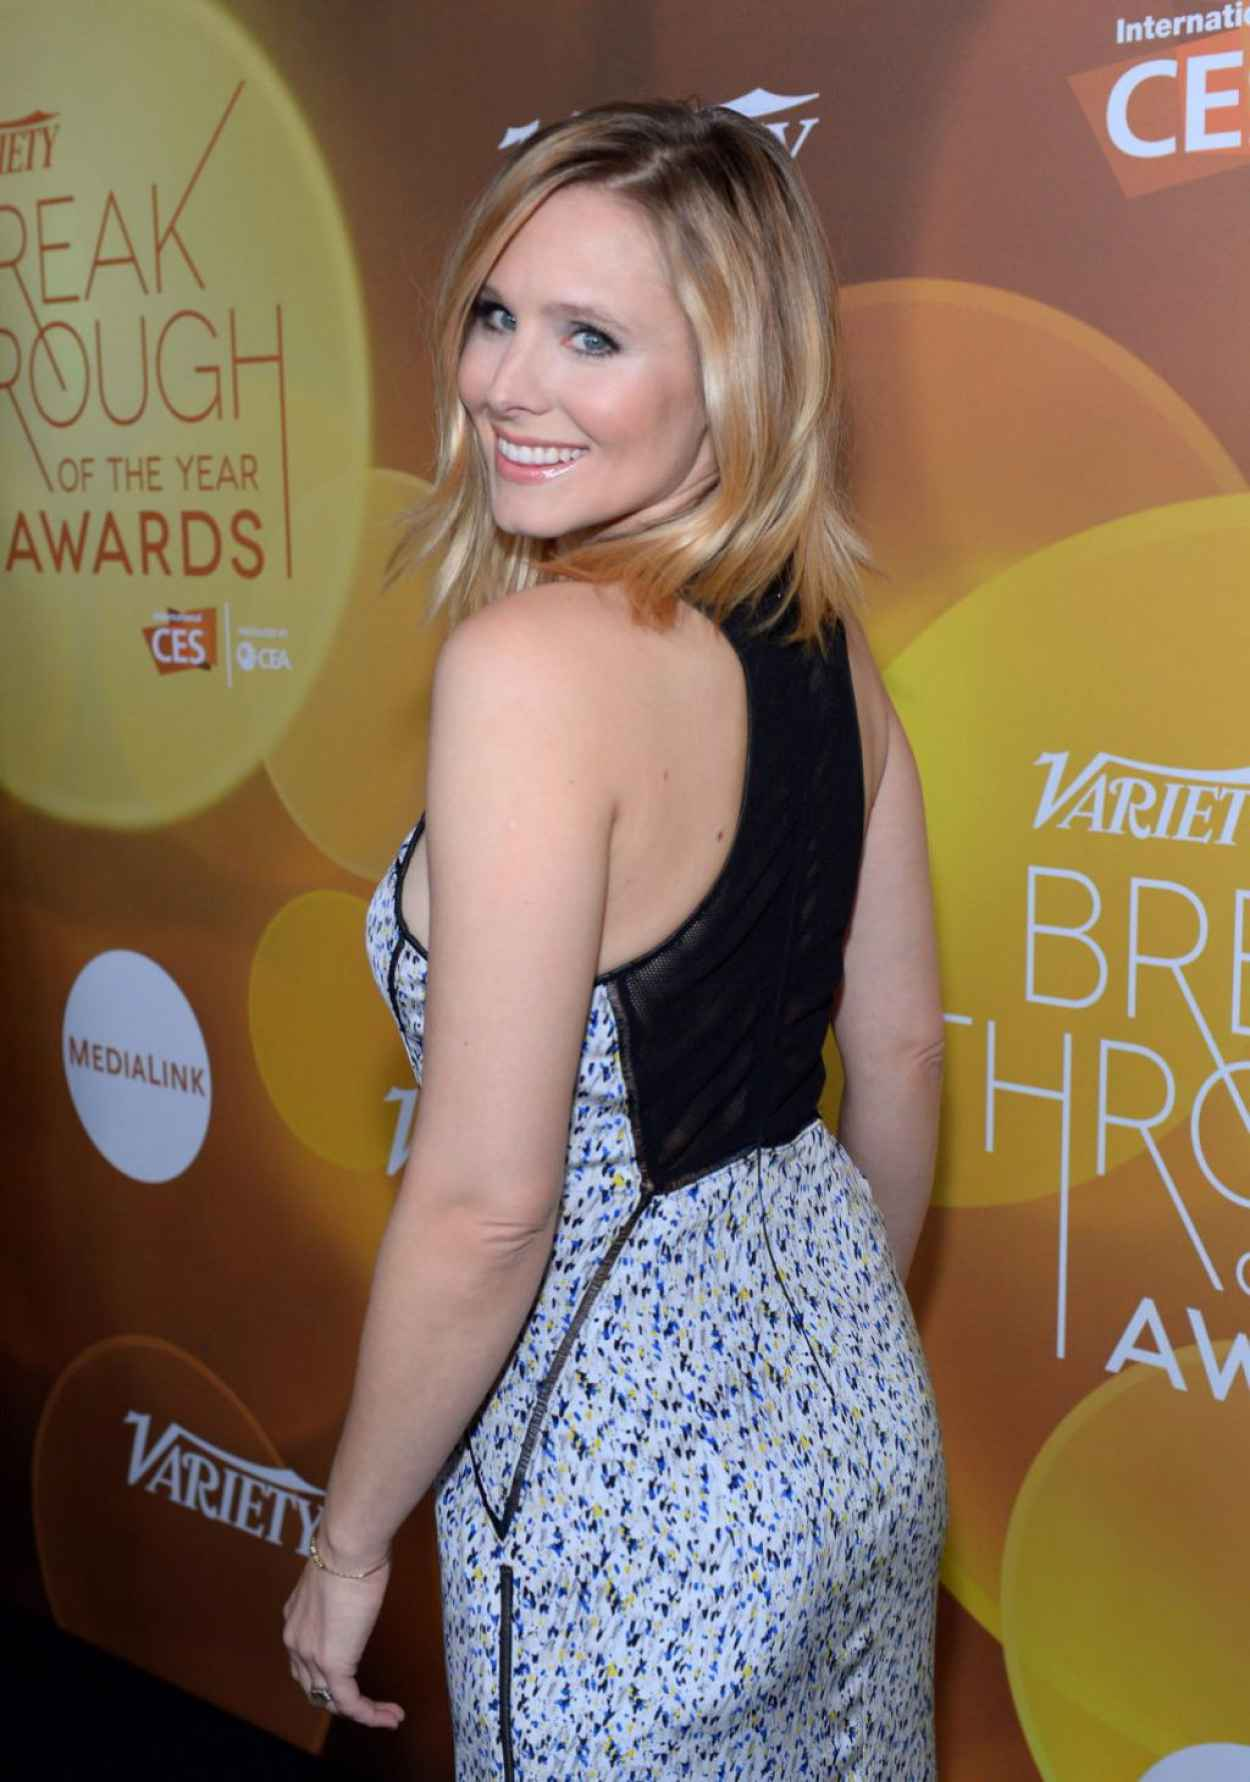 Kristen Bell - 2015 Variety Breakthrough Of The Year Awards in Vegas - Jan. 2015-1